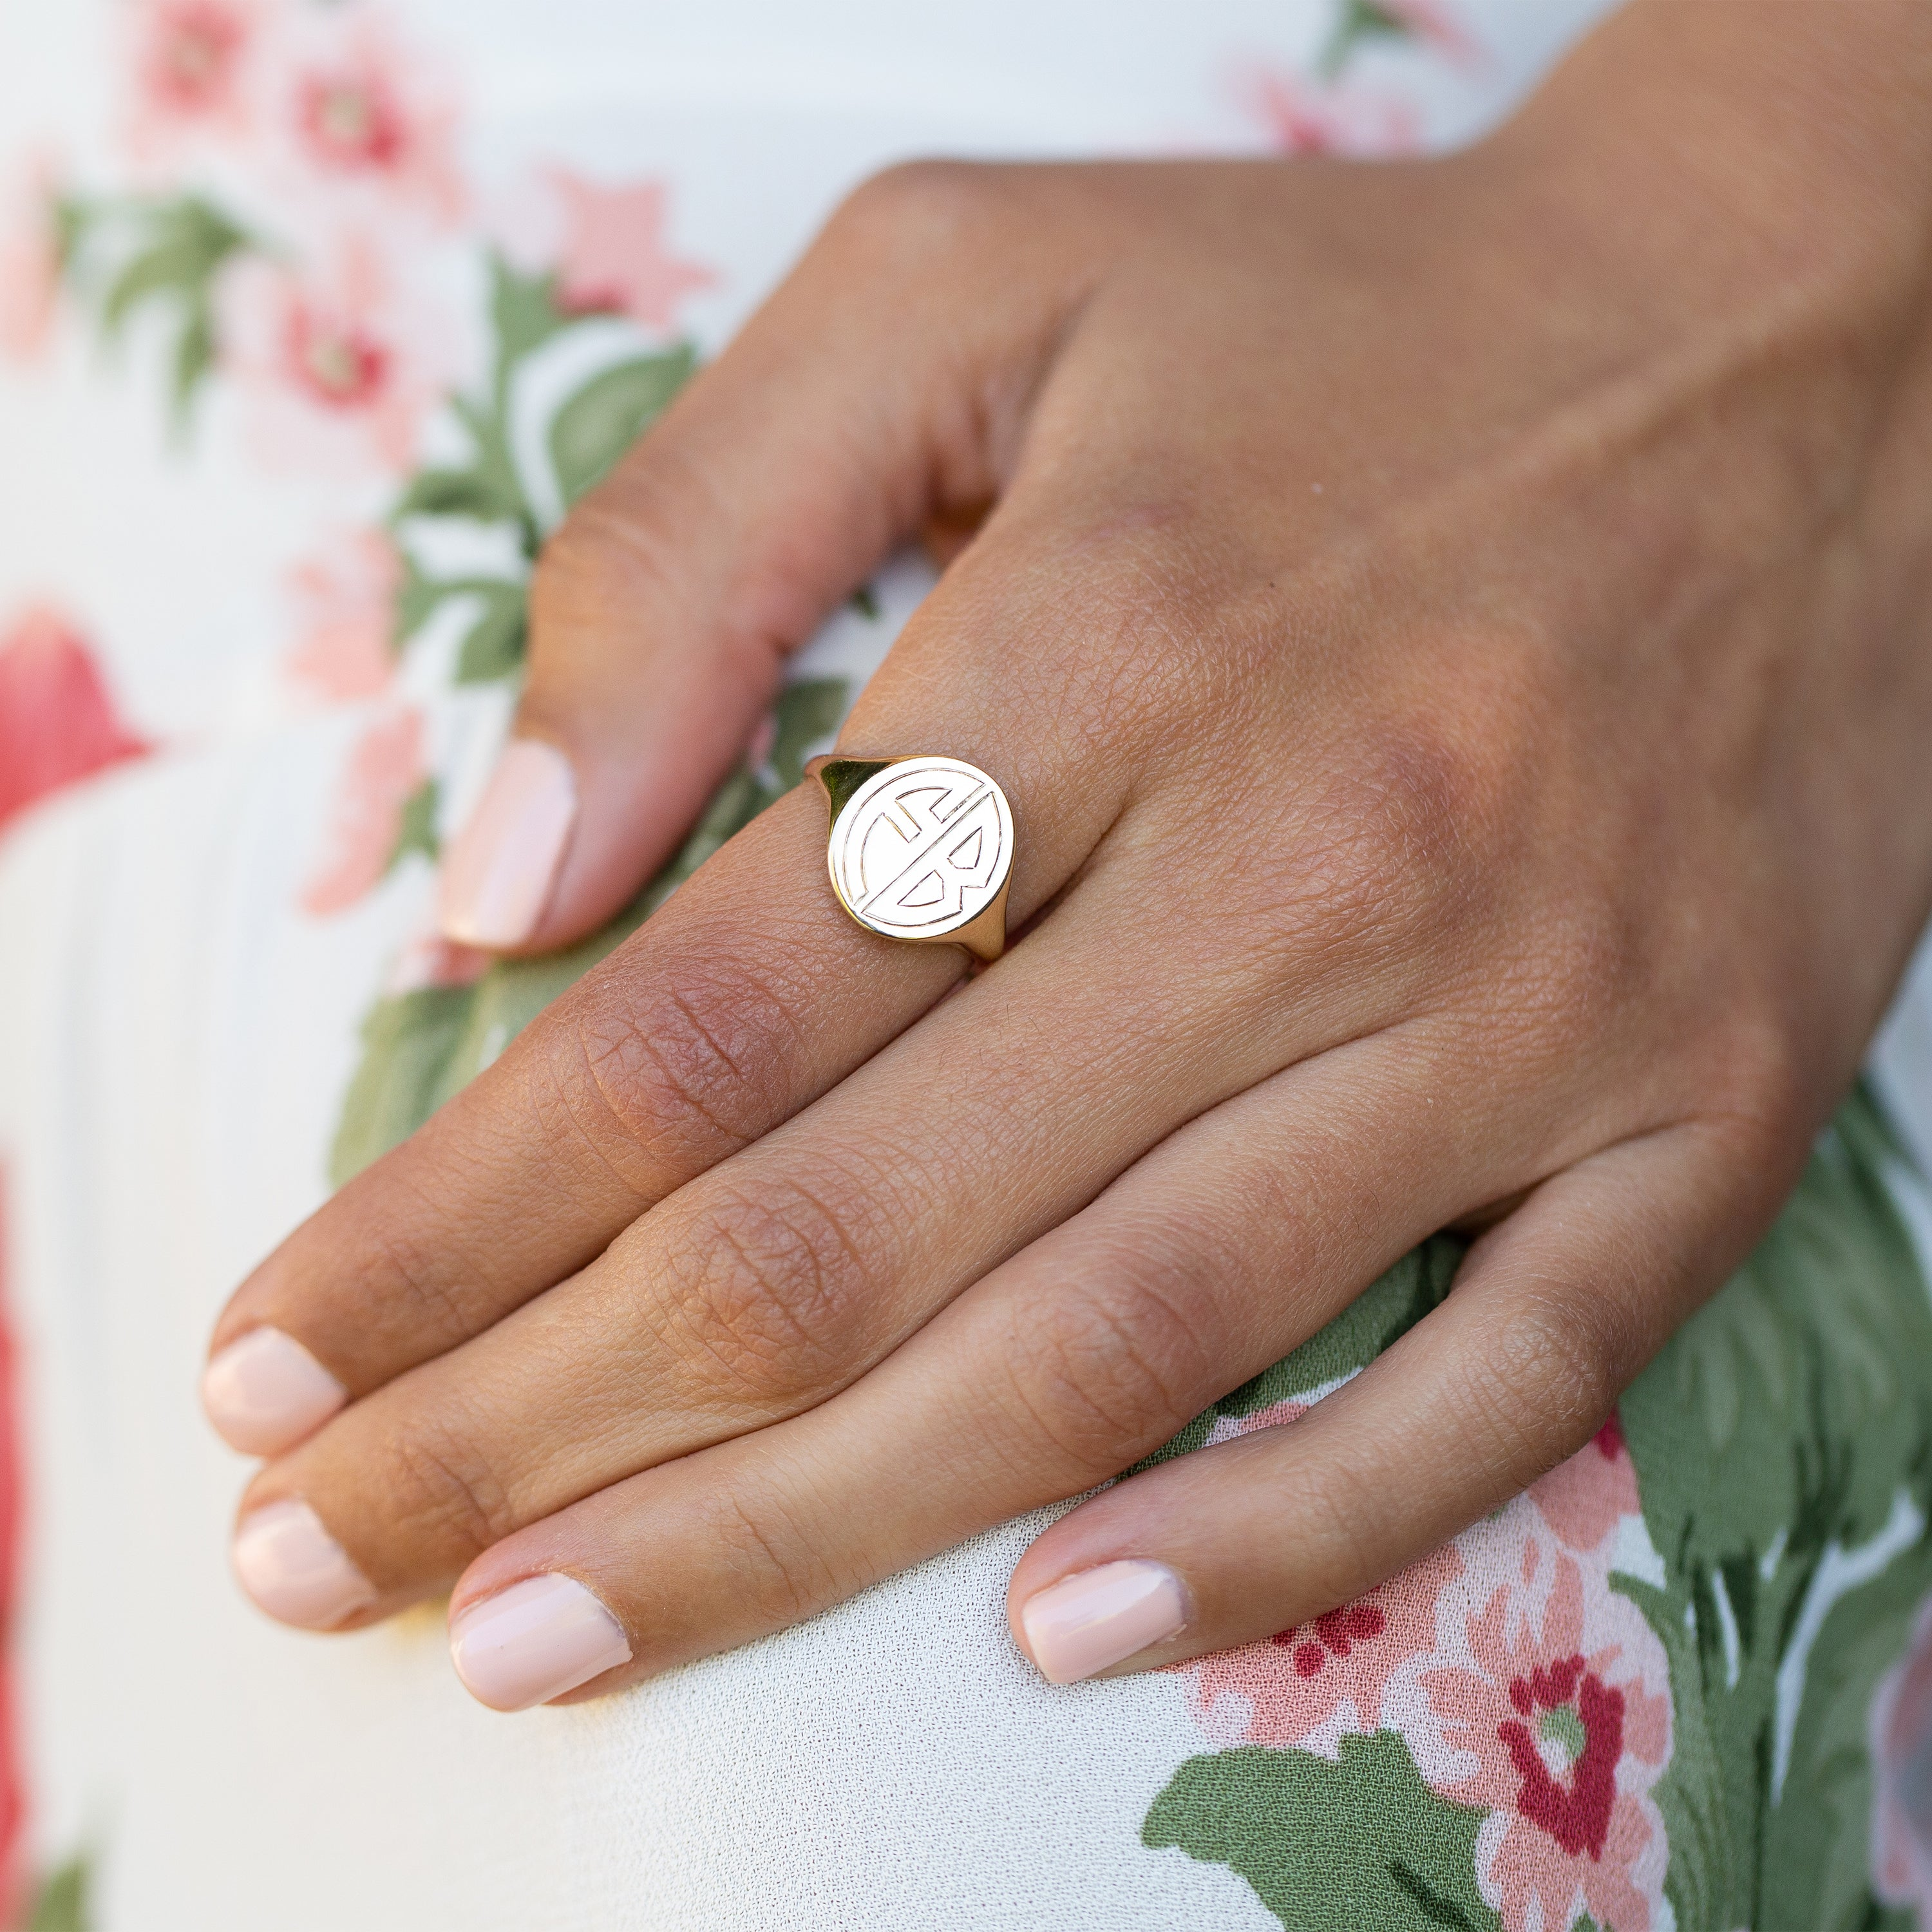 The F&B Large Gold Signet Ring